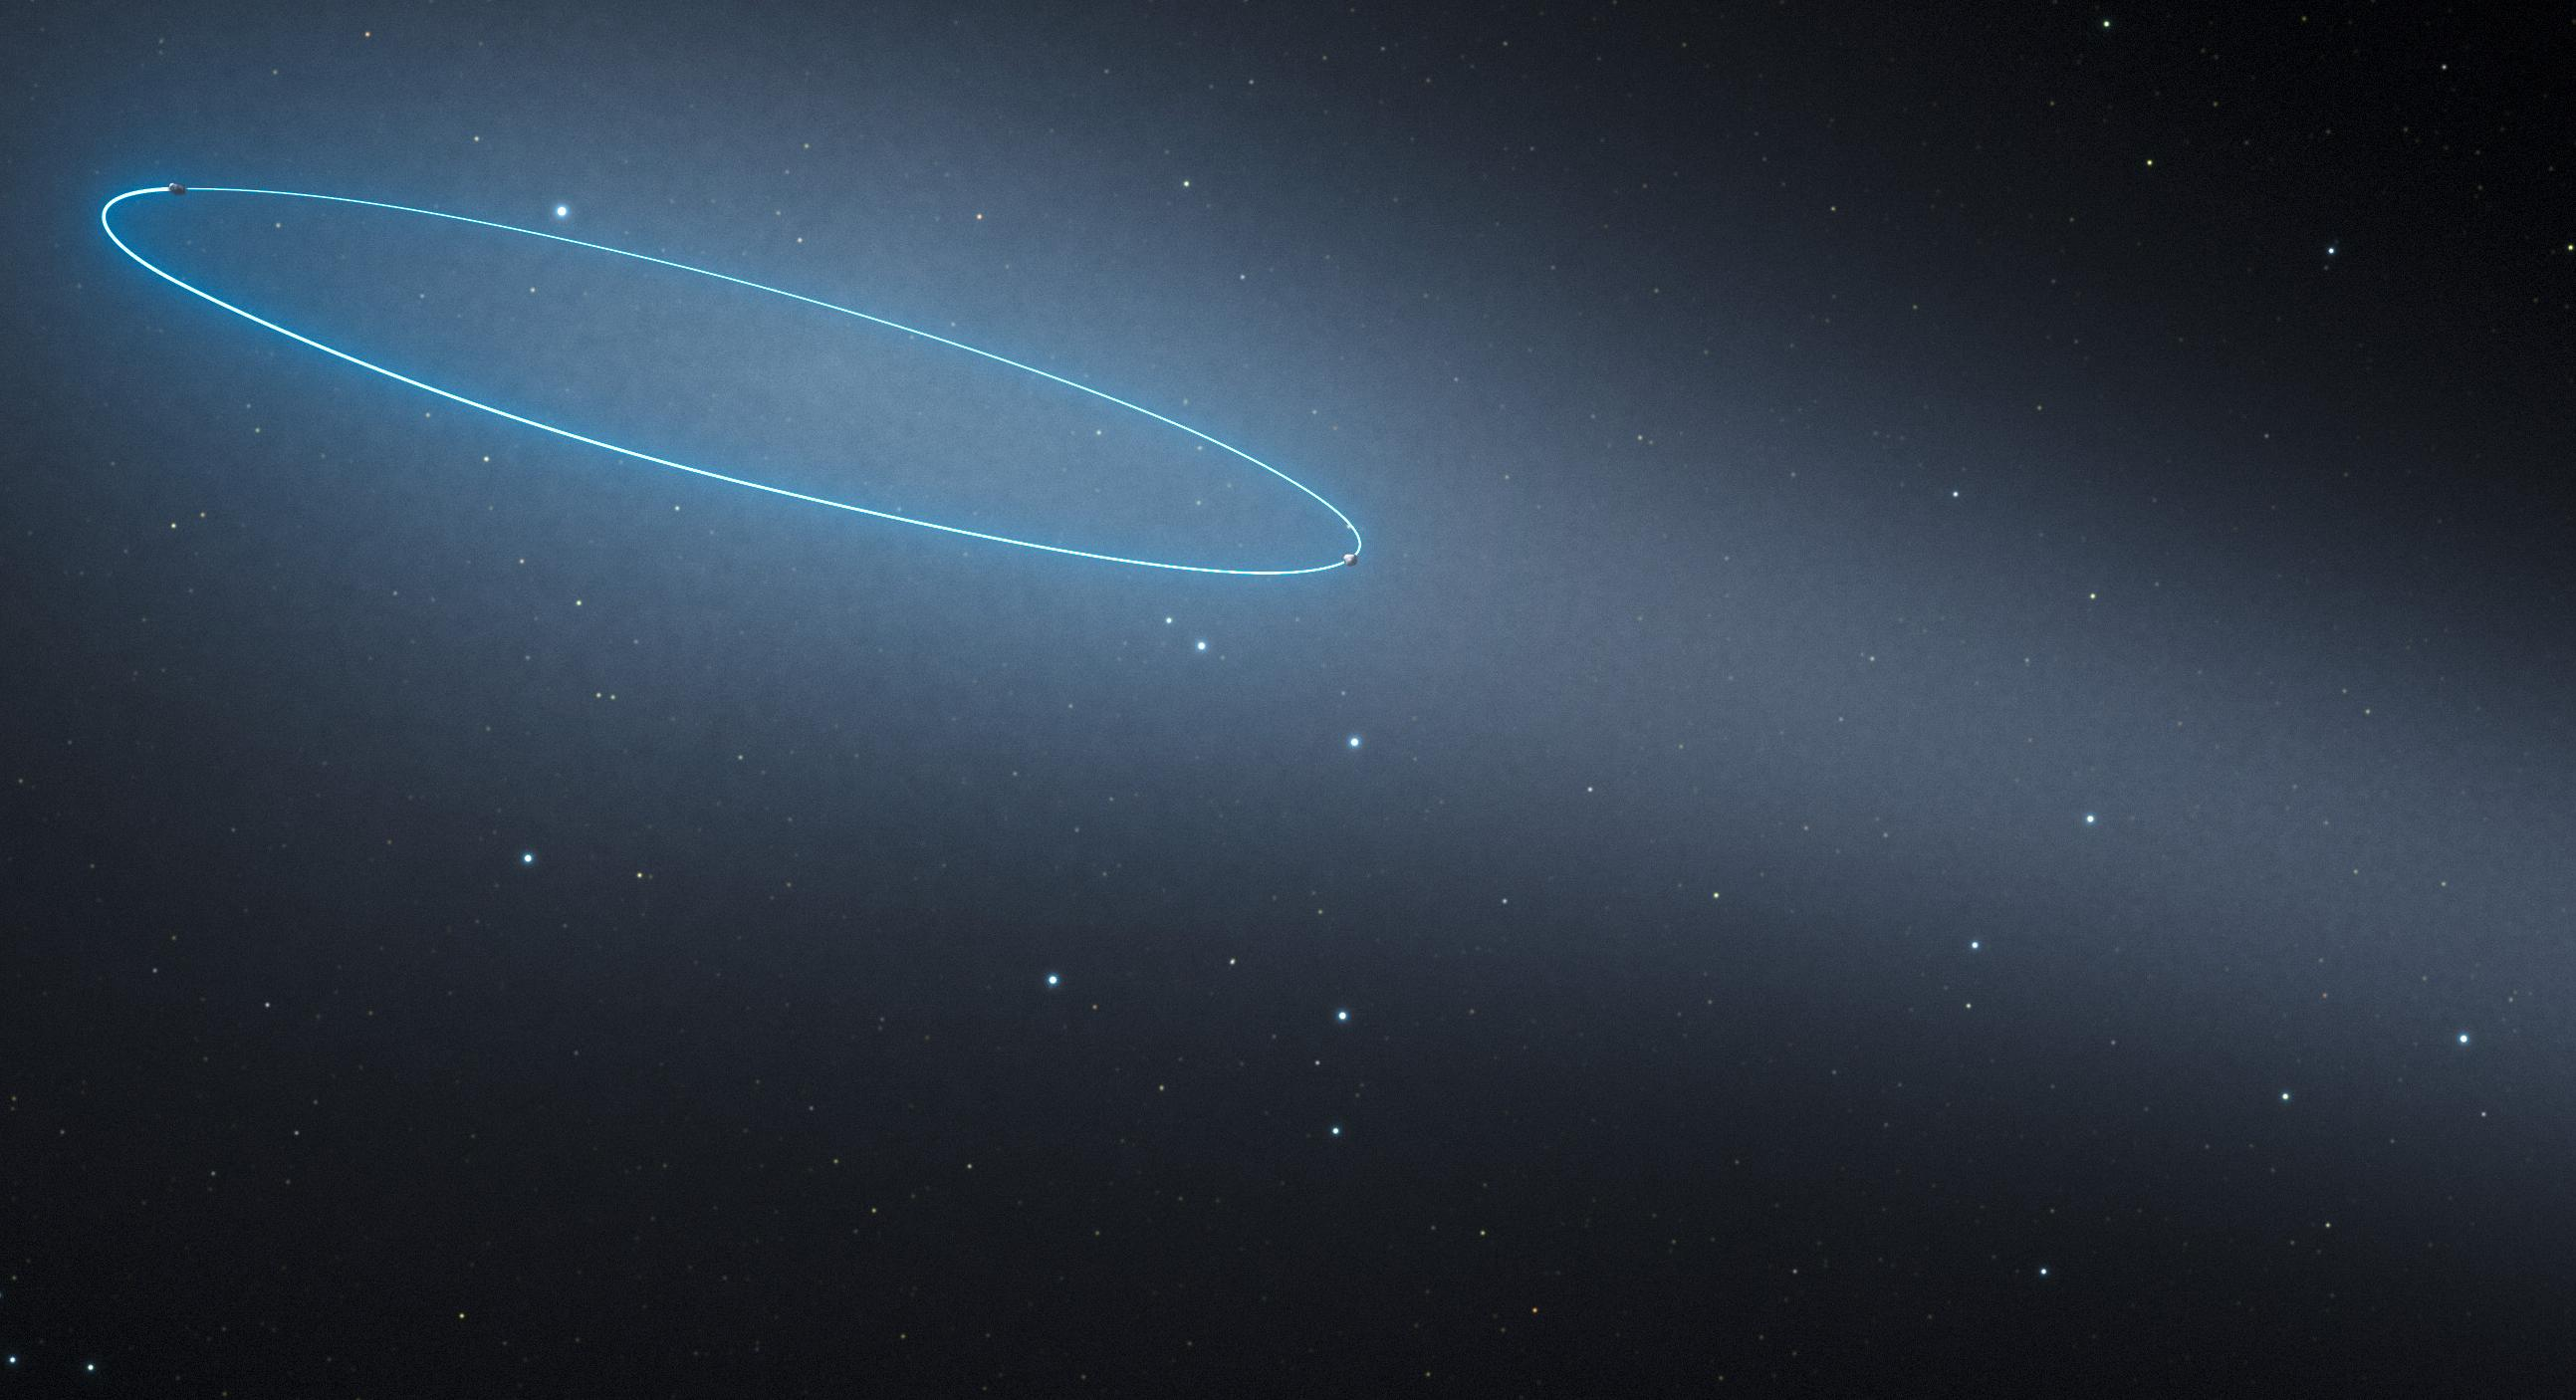 This artist's impression shows the binary asteroid 288P, located in the main asteroid belt between the planets Mars and Jupiter. The object is unique as it is a binary asteroid that also behaves like a comet. The cometlike properties are the result of water sublimation, caused by the heat of the sun. The orbit of the asteroids is marked by a blue ellipse. (Image: ESA/Hubble, L. Calçada)